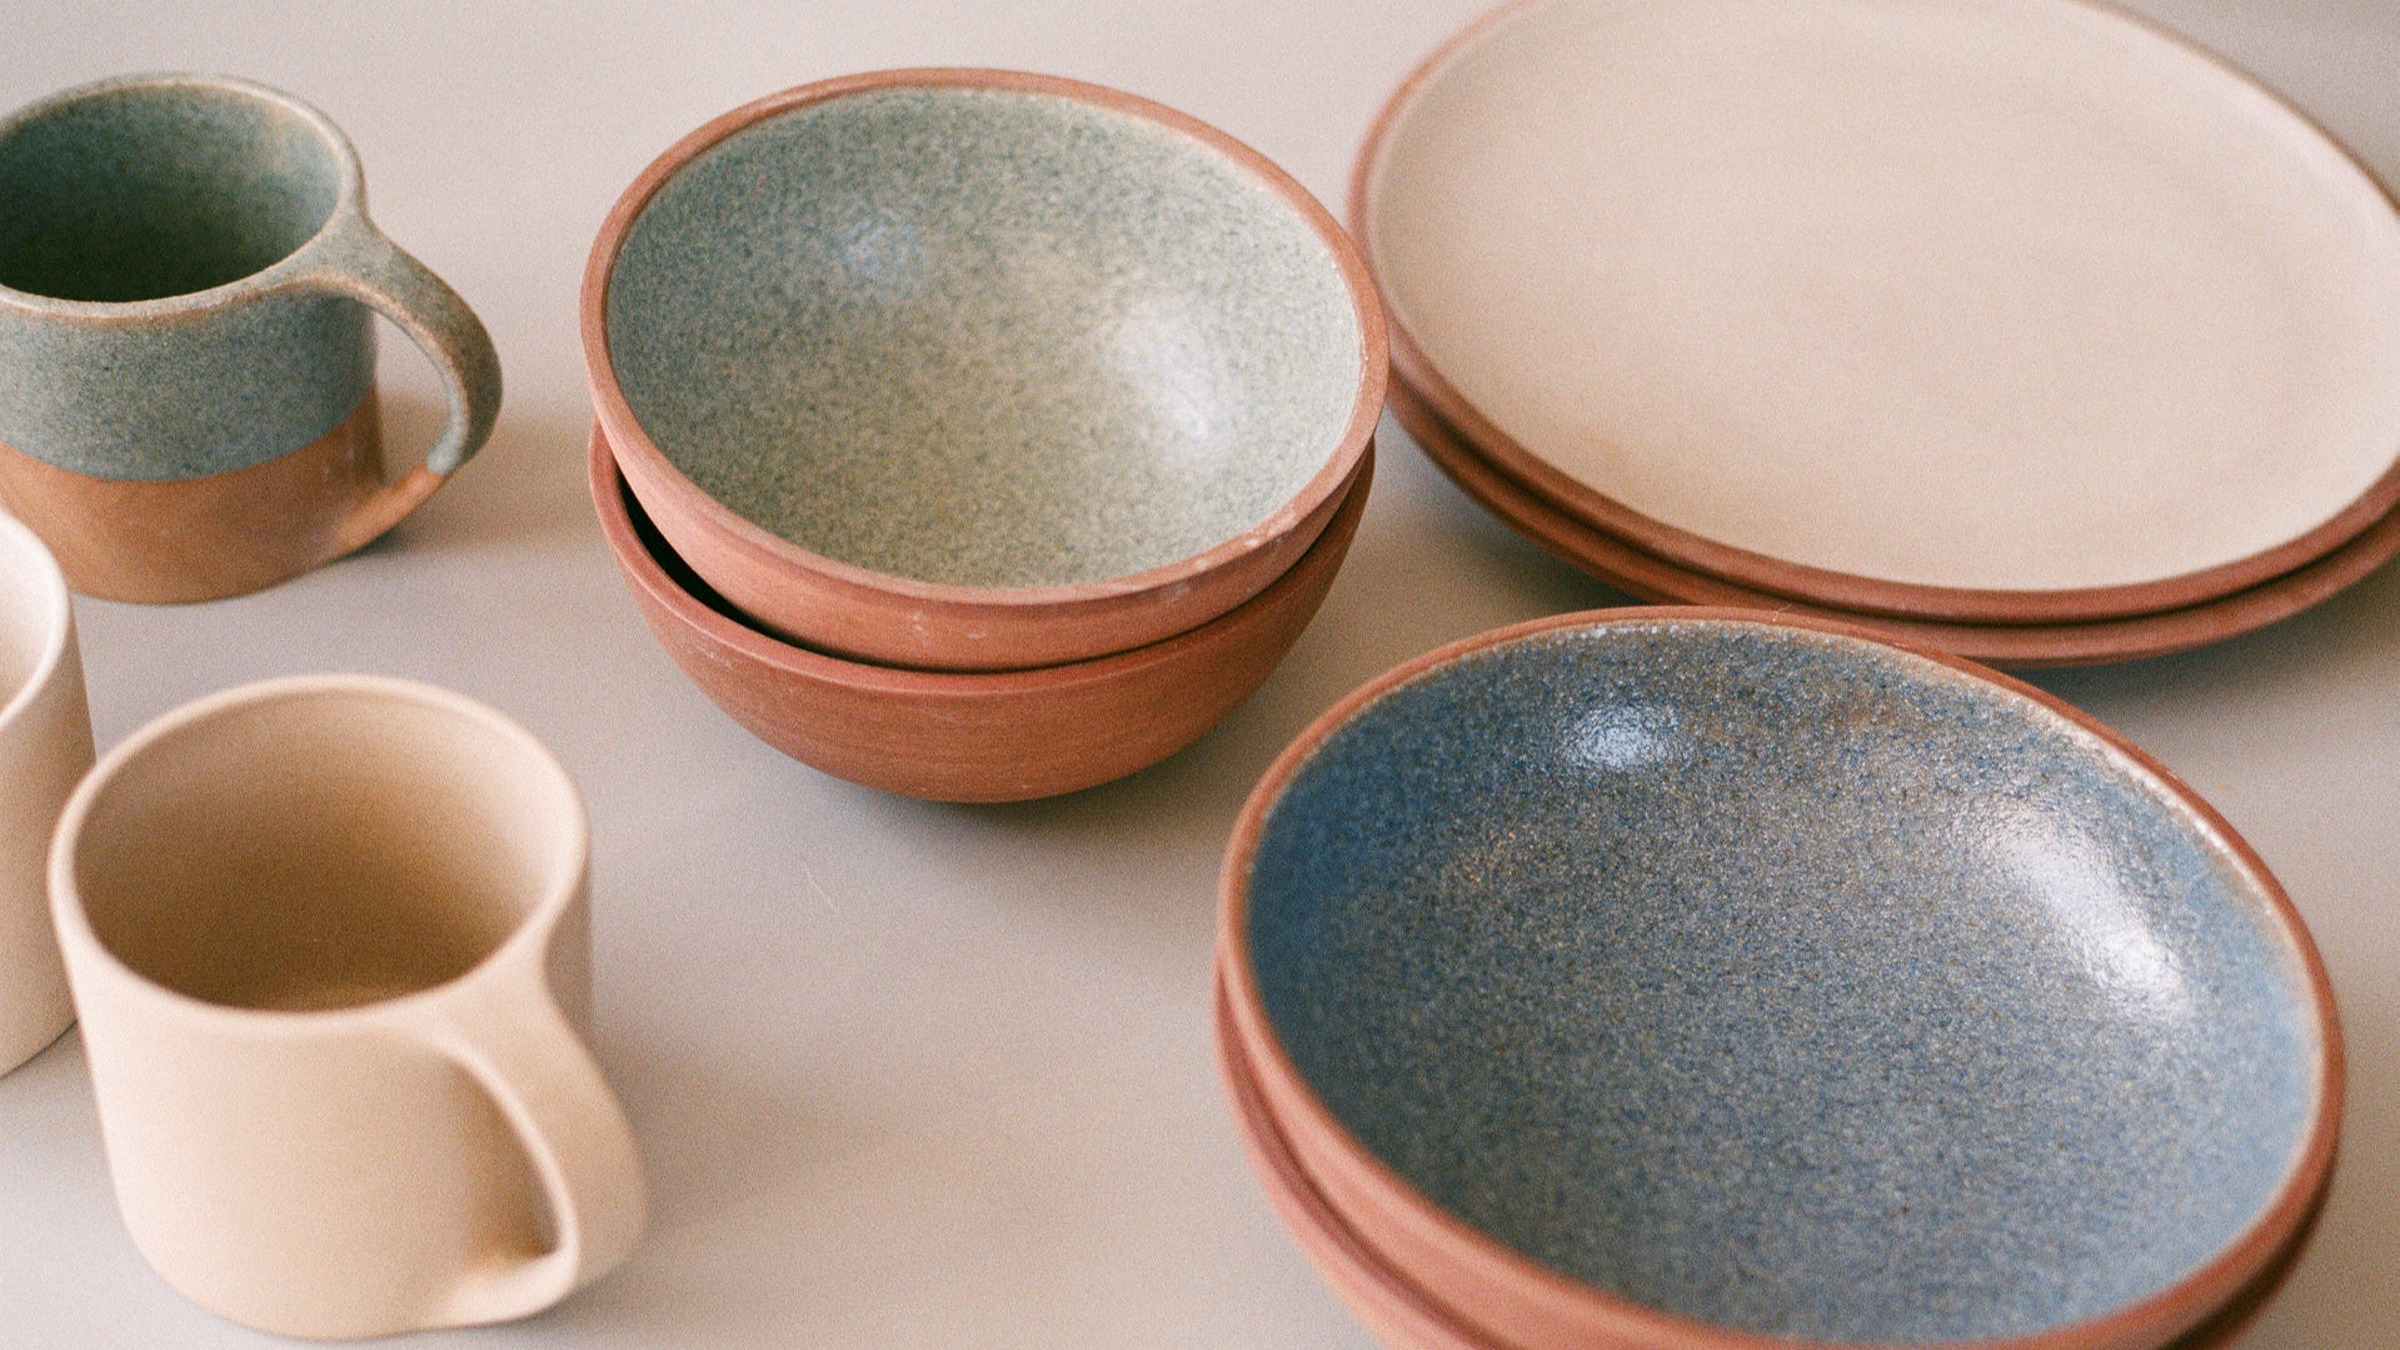 From Waste To Taste The Art Of Recycled Ceramic Tableware Financial Times